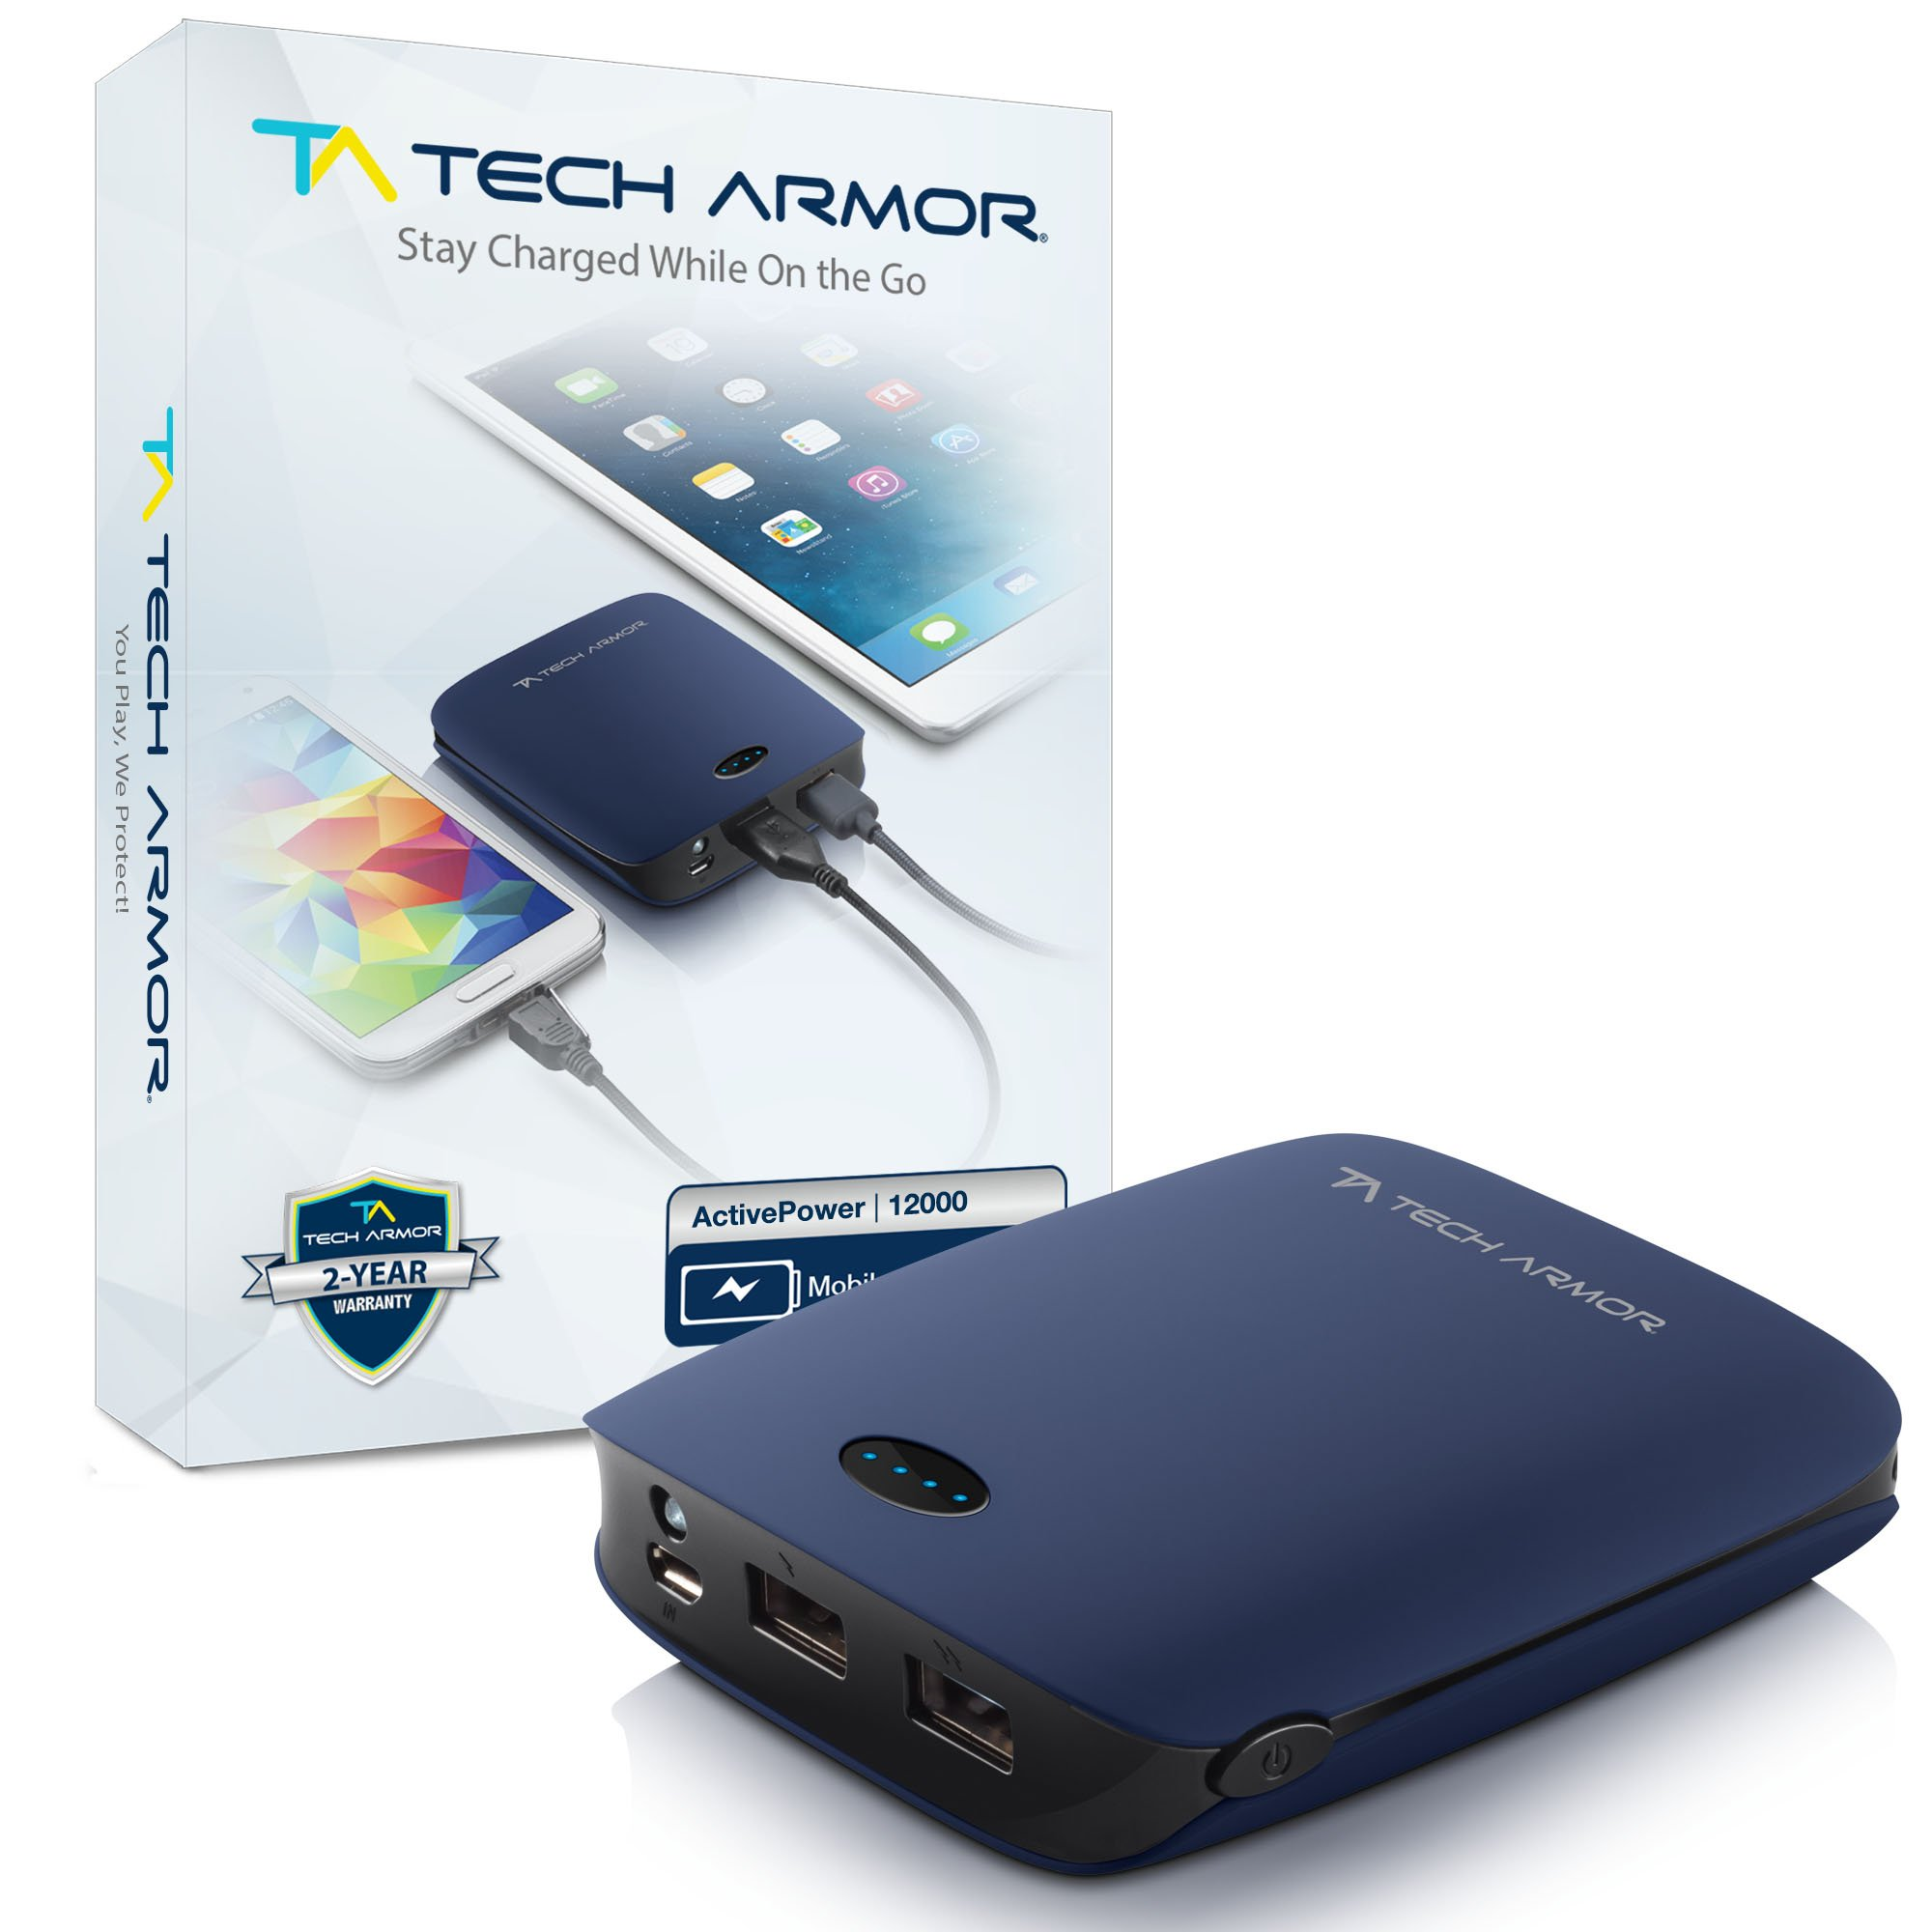 Tech Armor ActivePower 12000mAh External Battery Portable Dual USB Charger Power Bank - Fast Charging, High Capacity and Ultra Compact